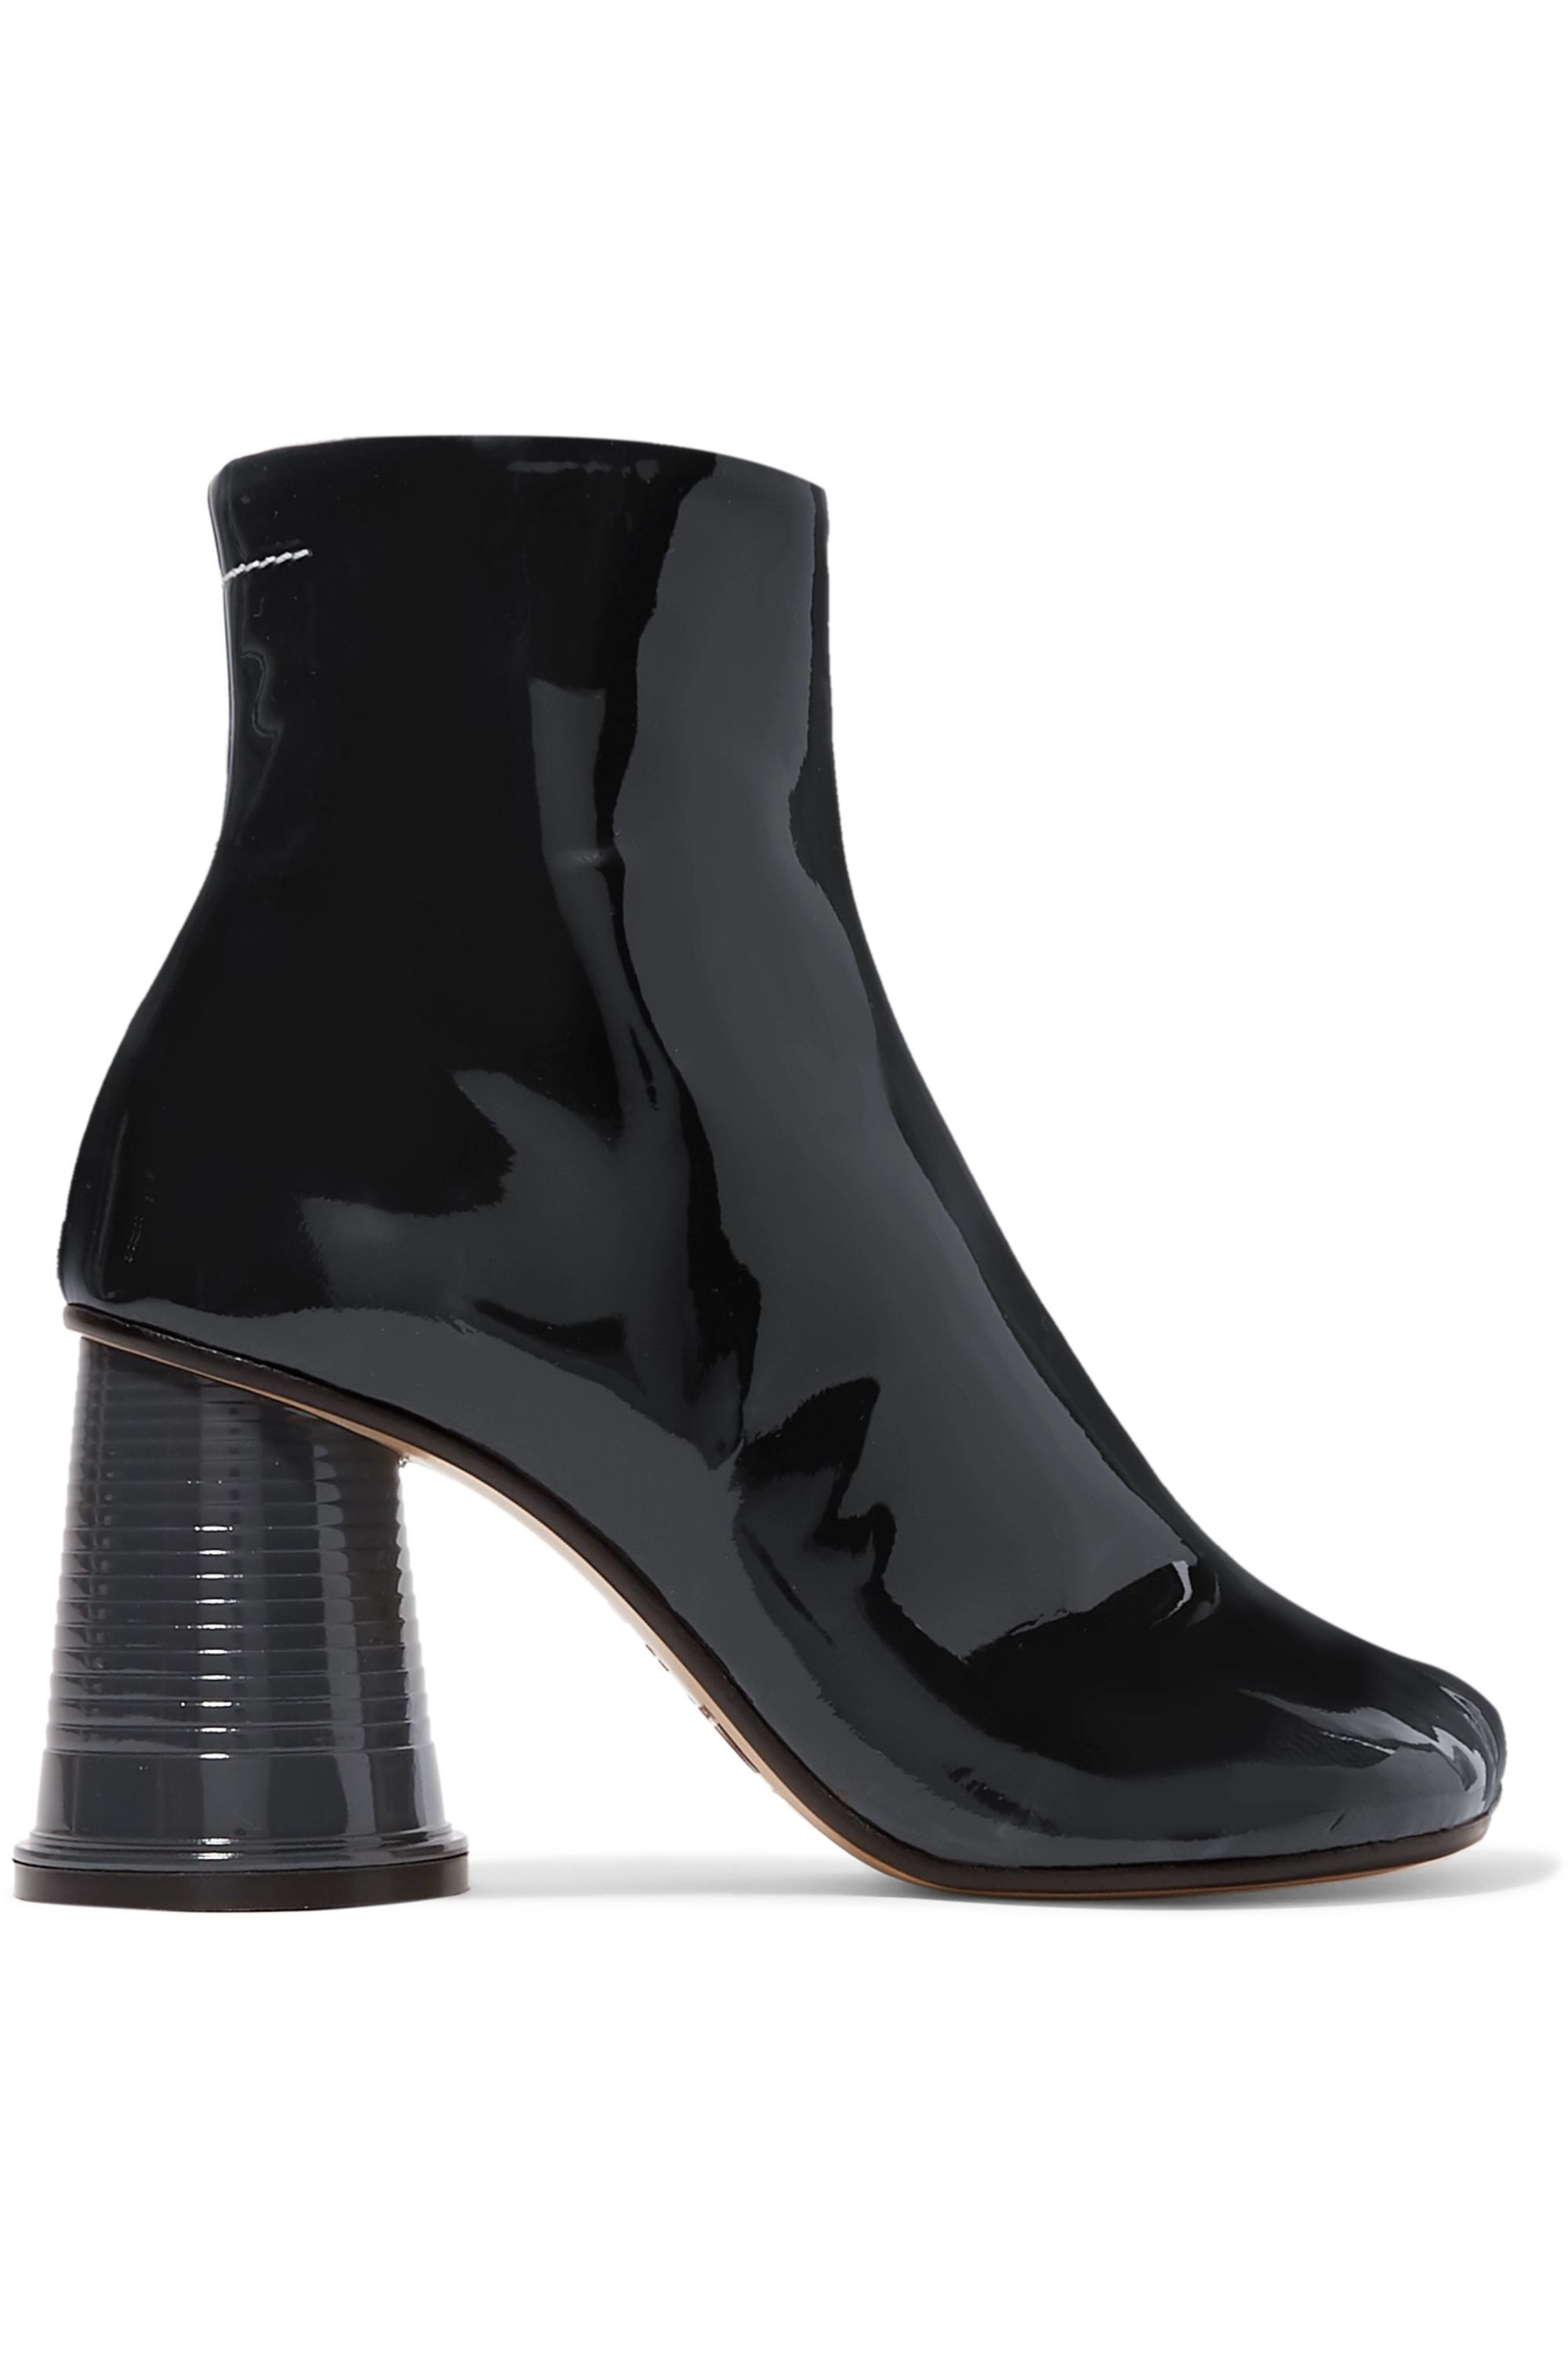 Black Patent leather ankle boots | MM6